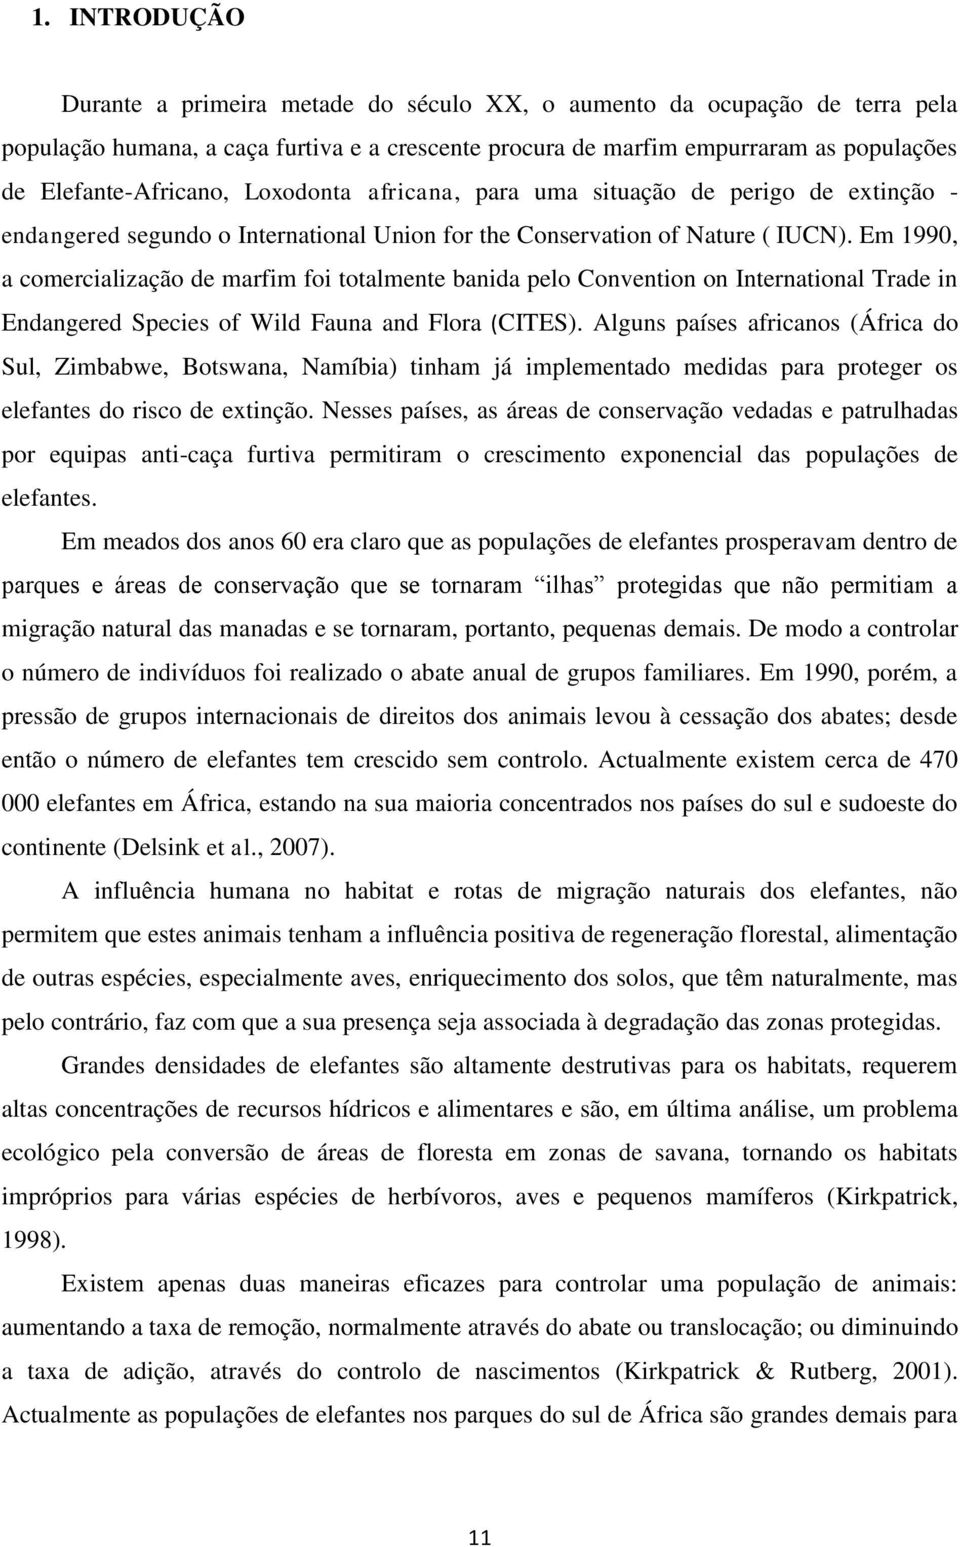 Em 1990, a comercialização de marfim foi totalmente banida pelo Convention on International Trade in Endangered Species of Wild Fauna and Flora (CITES).